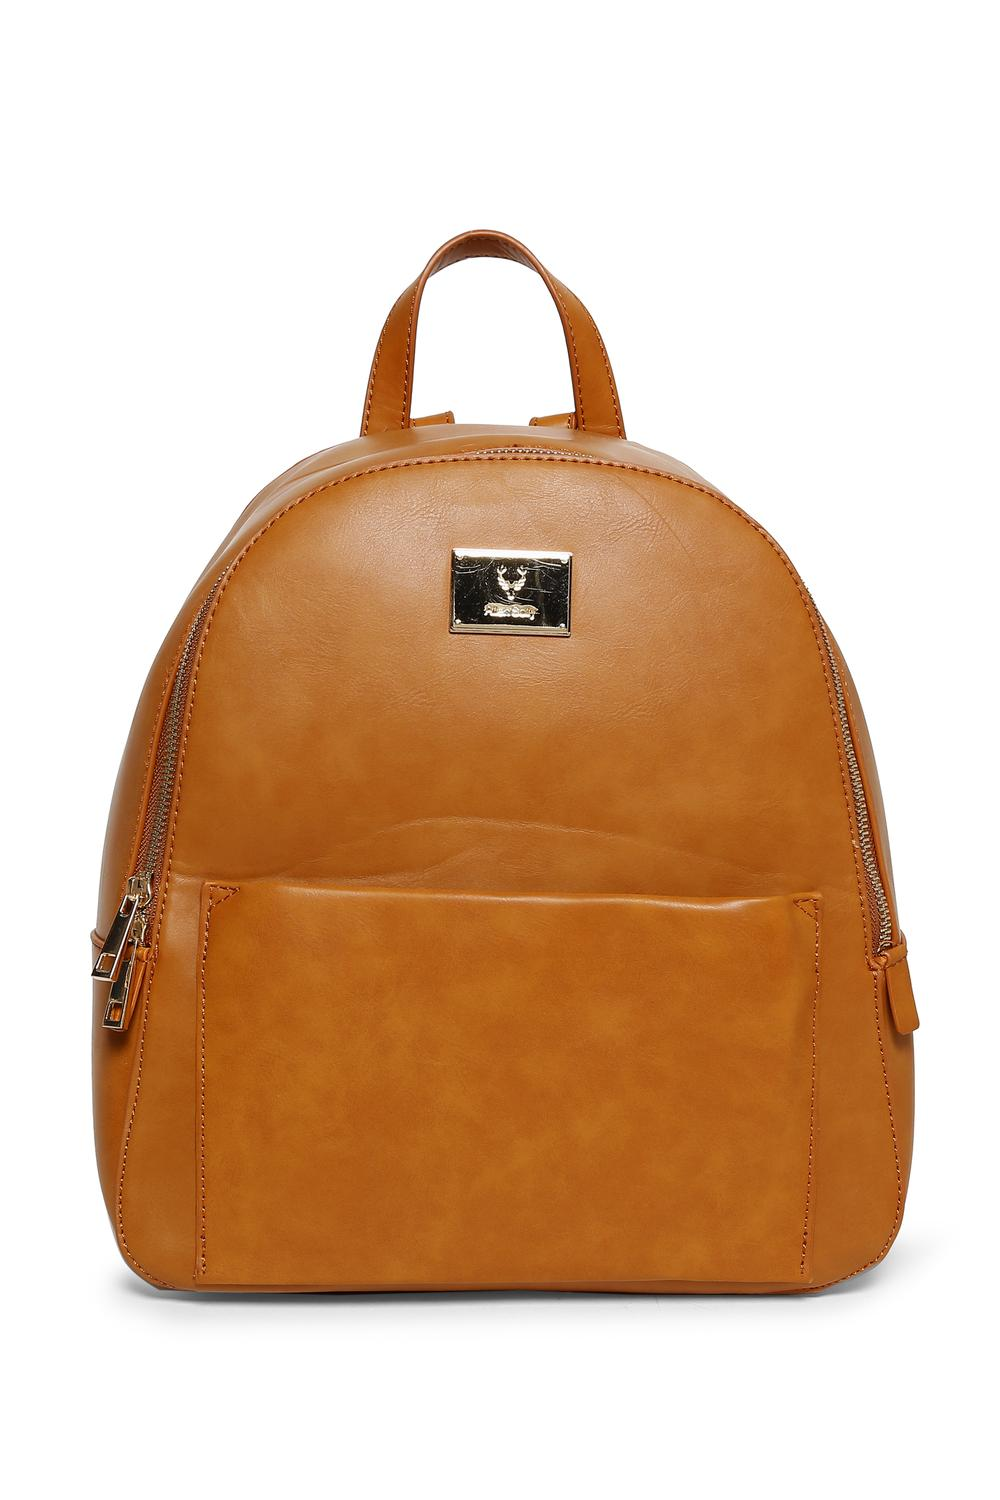 f1d4de94f2 Solly Fashion Accessories, Allen Solly Tan Backpack for Women at  Allensolly.com